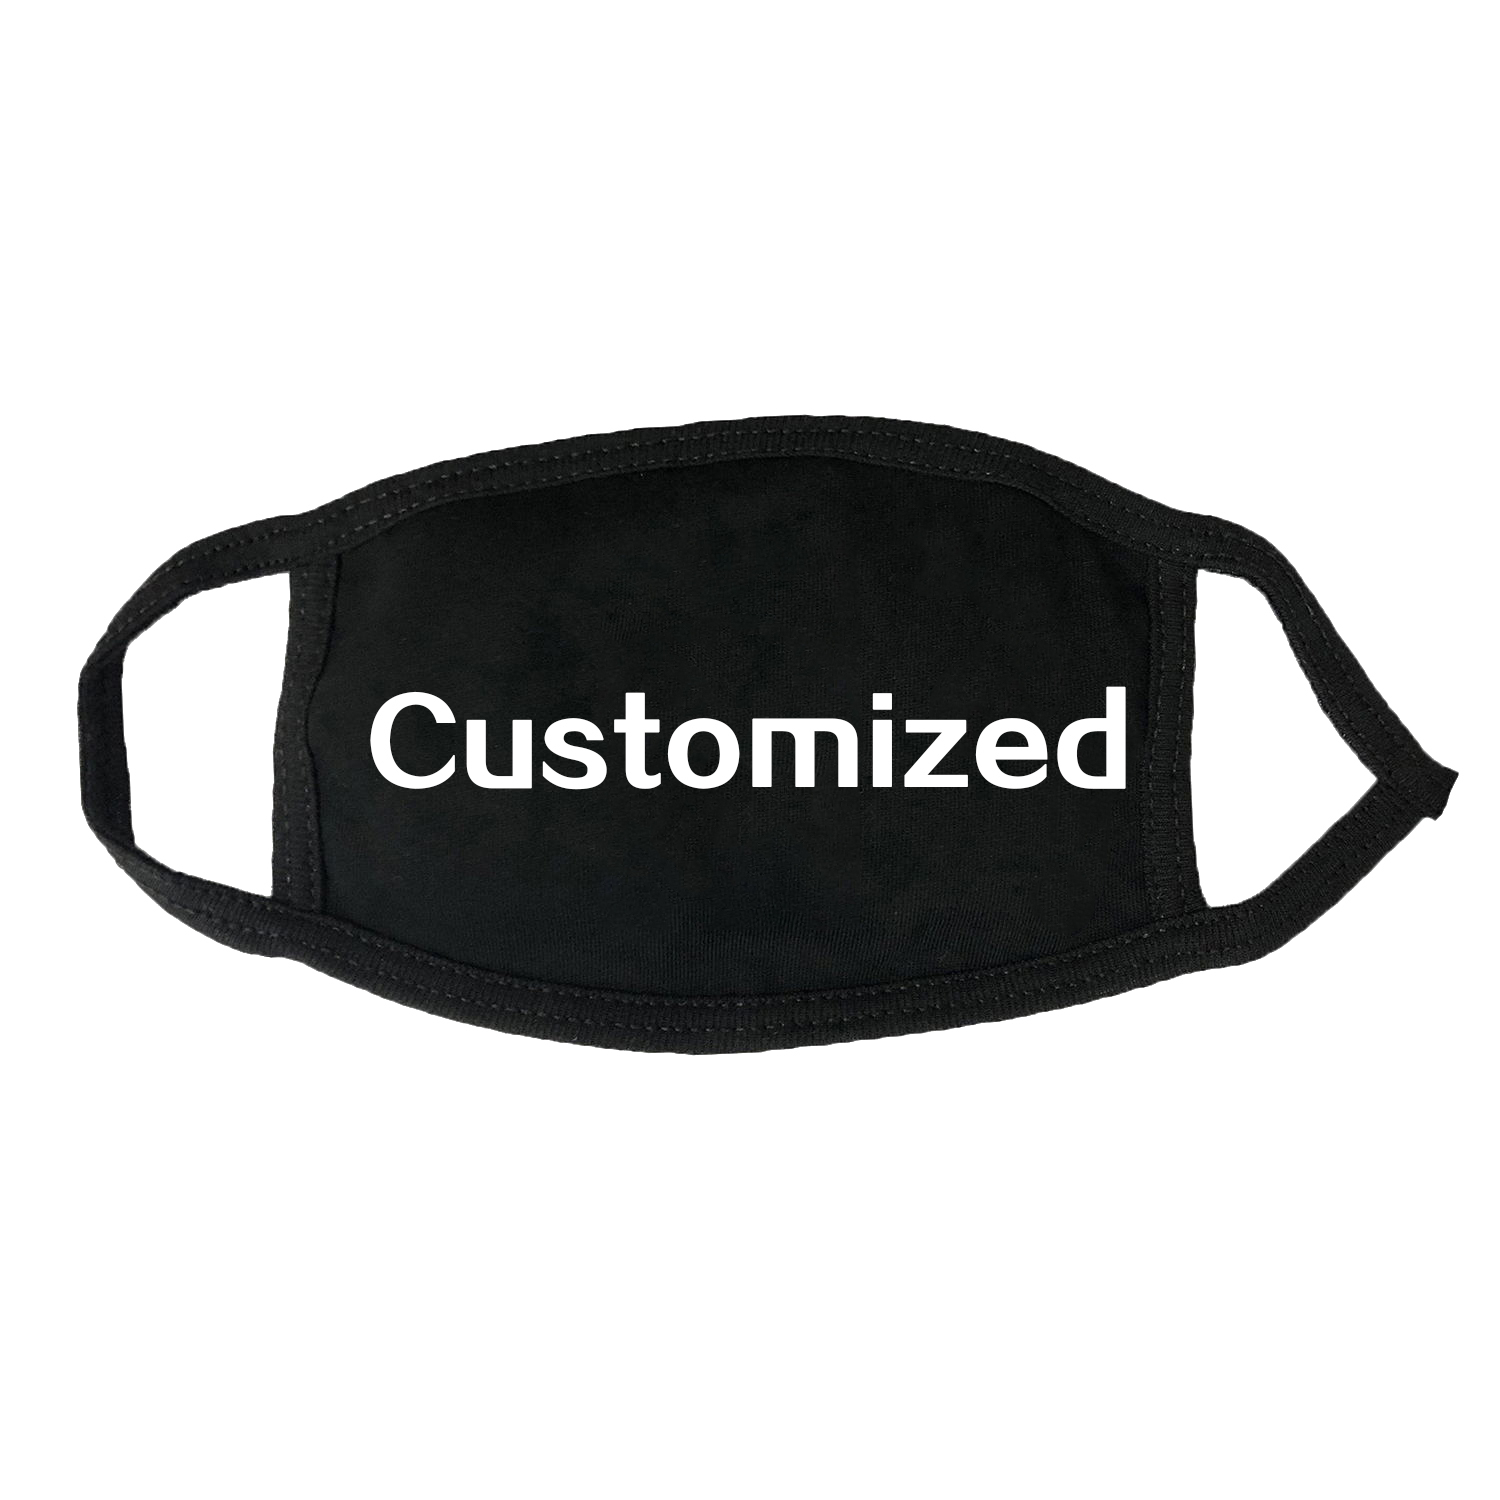 Customized Masks For Adults Children Pure Cotton Custom Made Cloth Mask Men Women Custom Face Mask Mouth Fashion